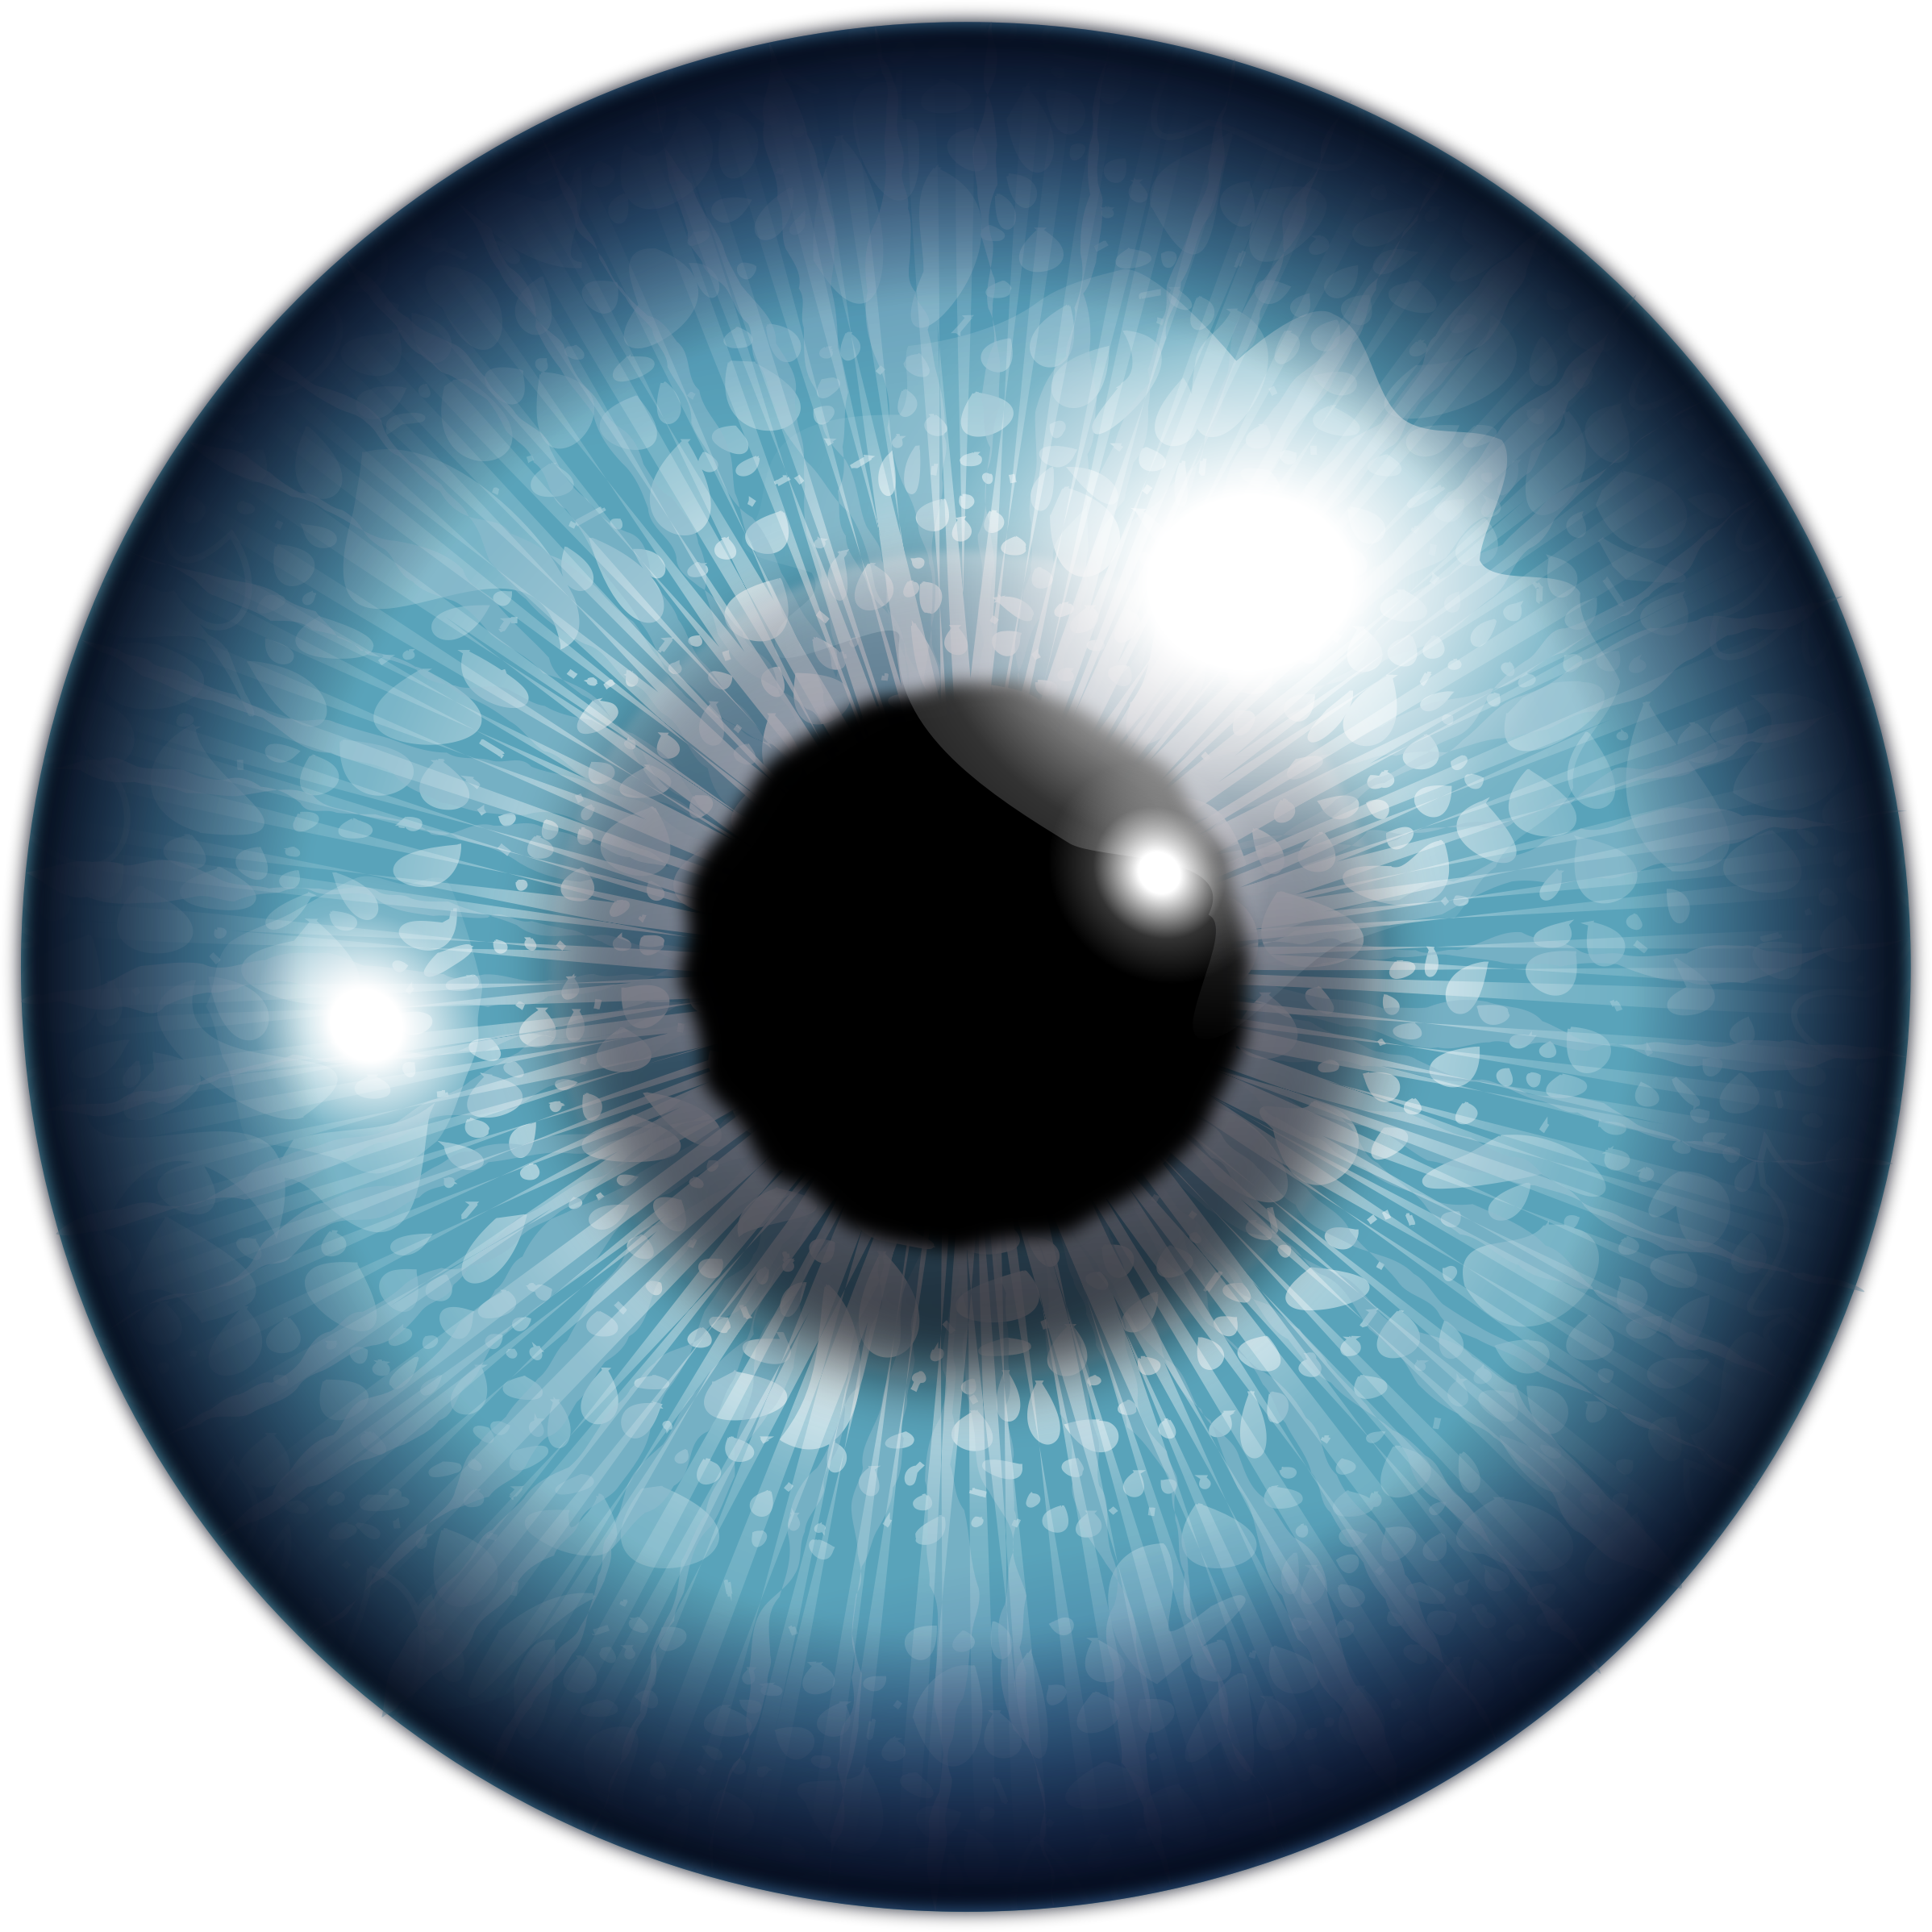 Blue Eye Drawing Png 42302 Free Icons And Png Backgrounds